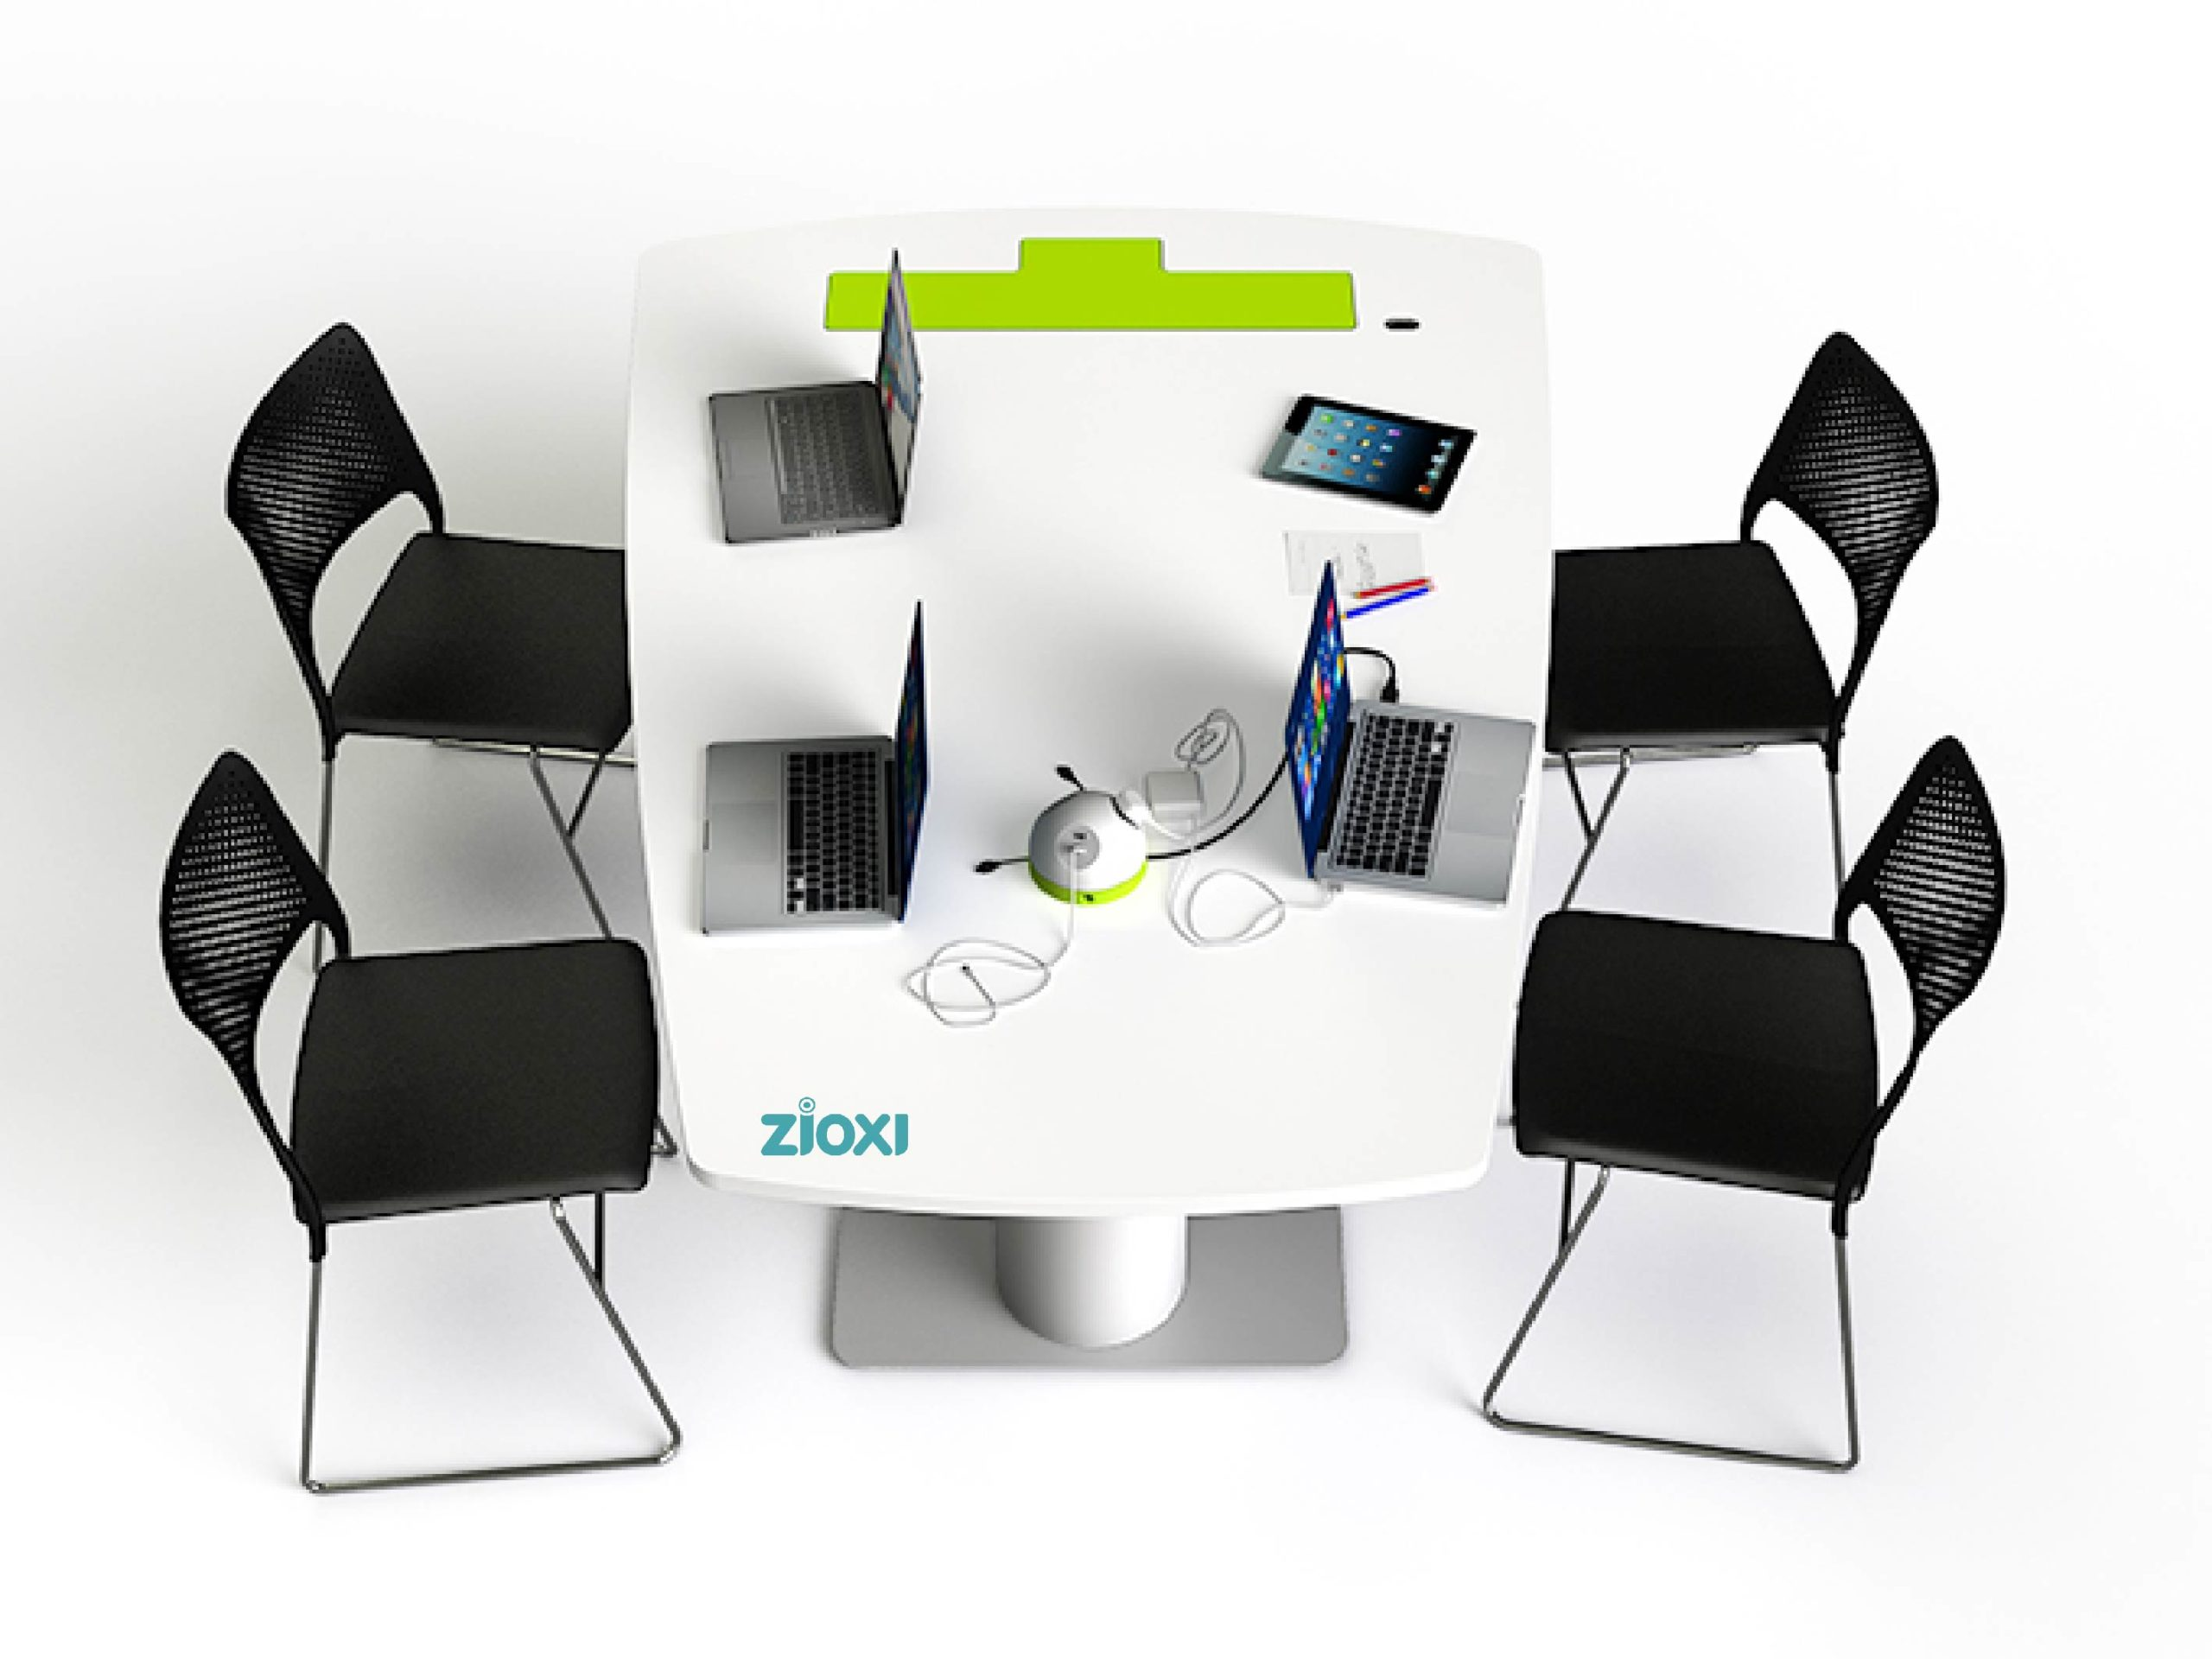 Table collaborative Zioxy salle réunion huddle room collaboratif work space